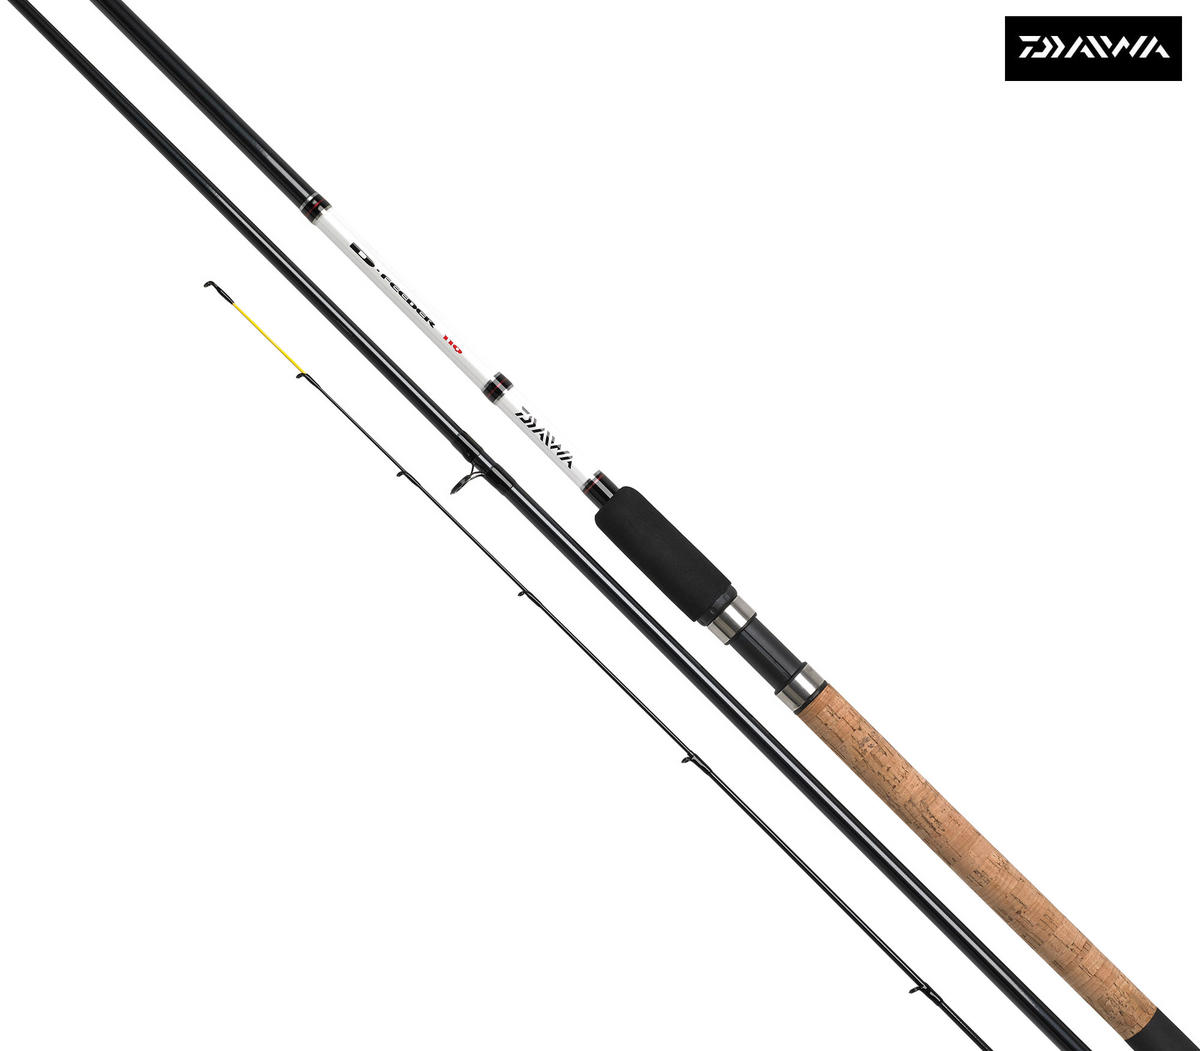 Special Offer Daiwa D-Feeder 11ft / 3pc Coarse Fishing Rod - DF11Q-AU